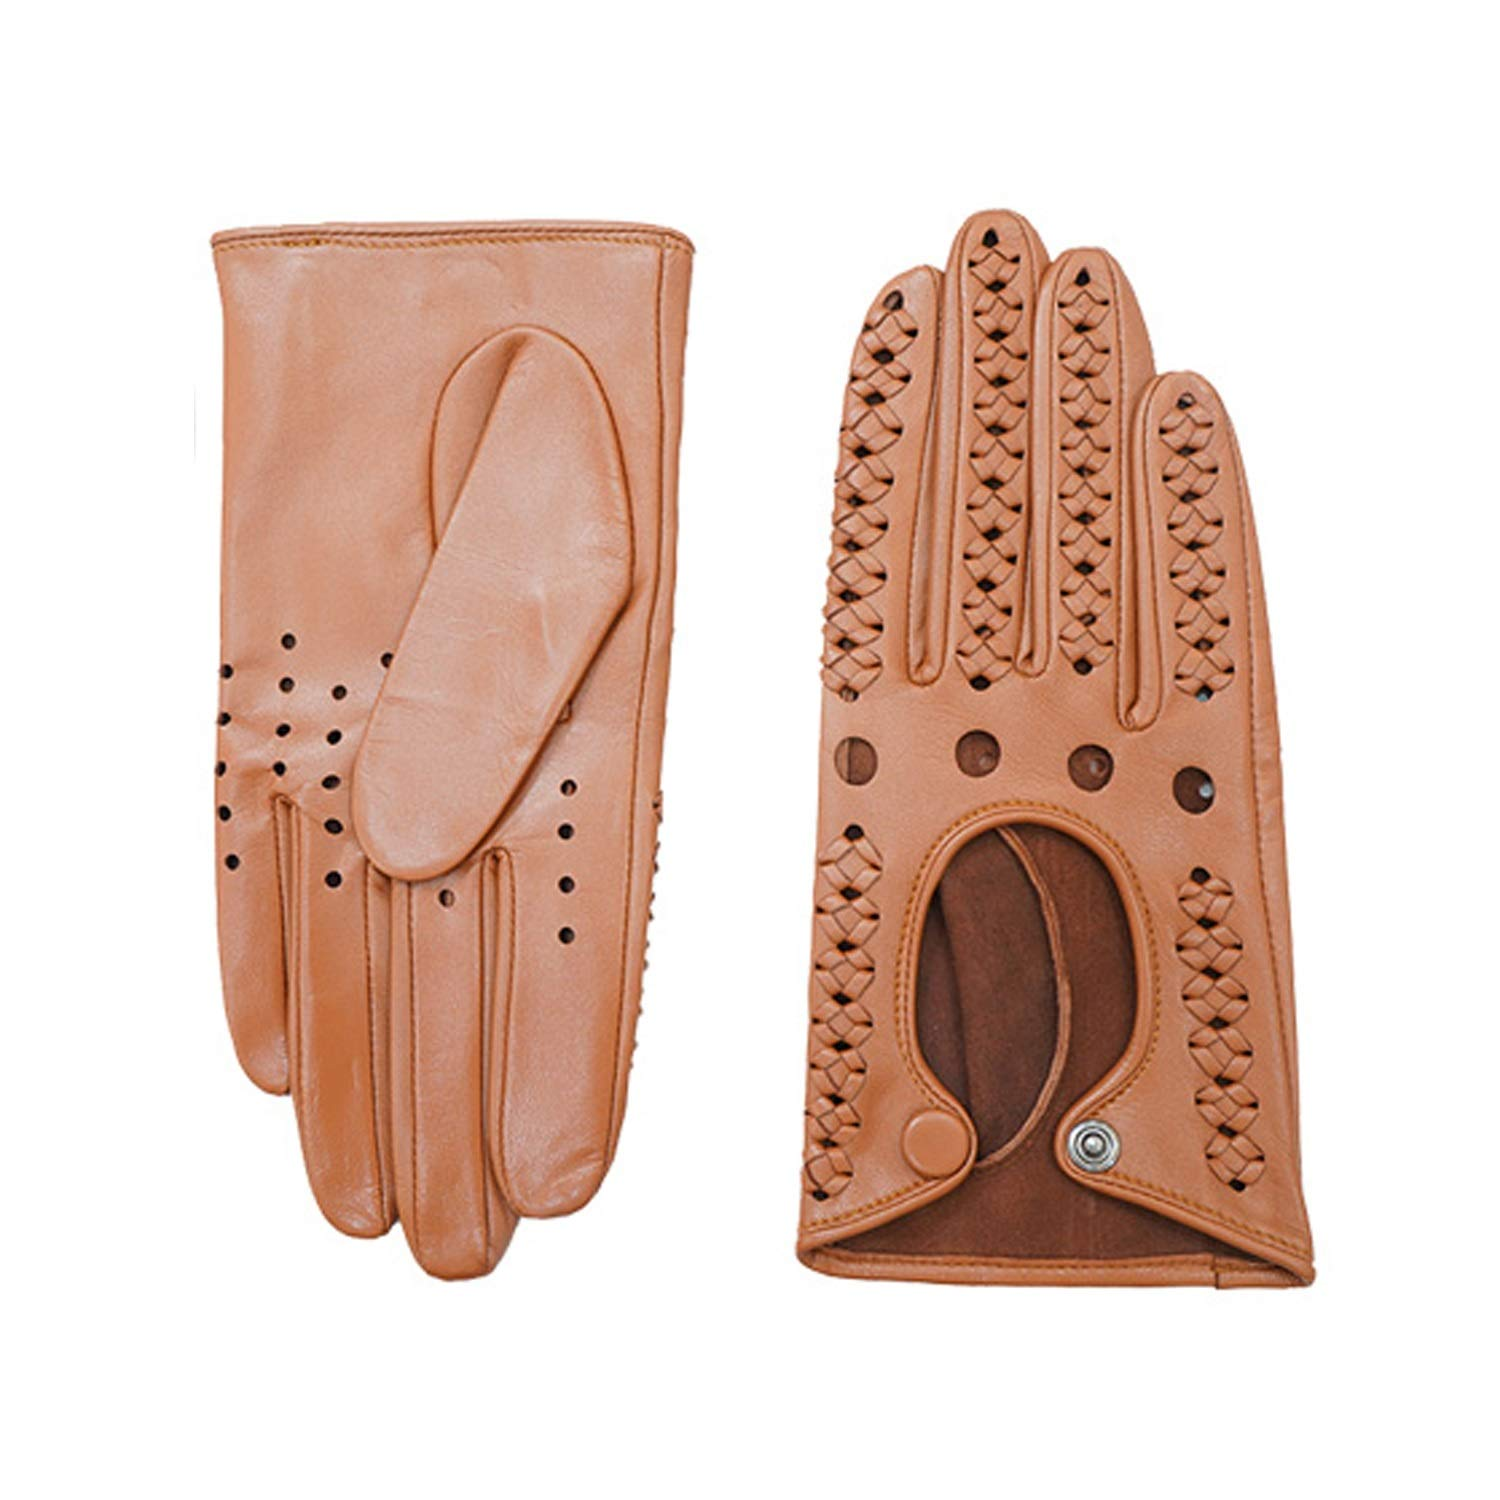 Genuine Leather Full-finger Driving Gloves Motorcycle Driving Cycling Gloves,1 pair Various style gloves (Color : Brown)